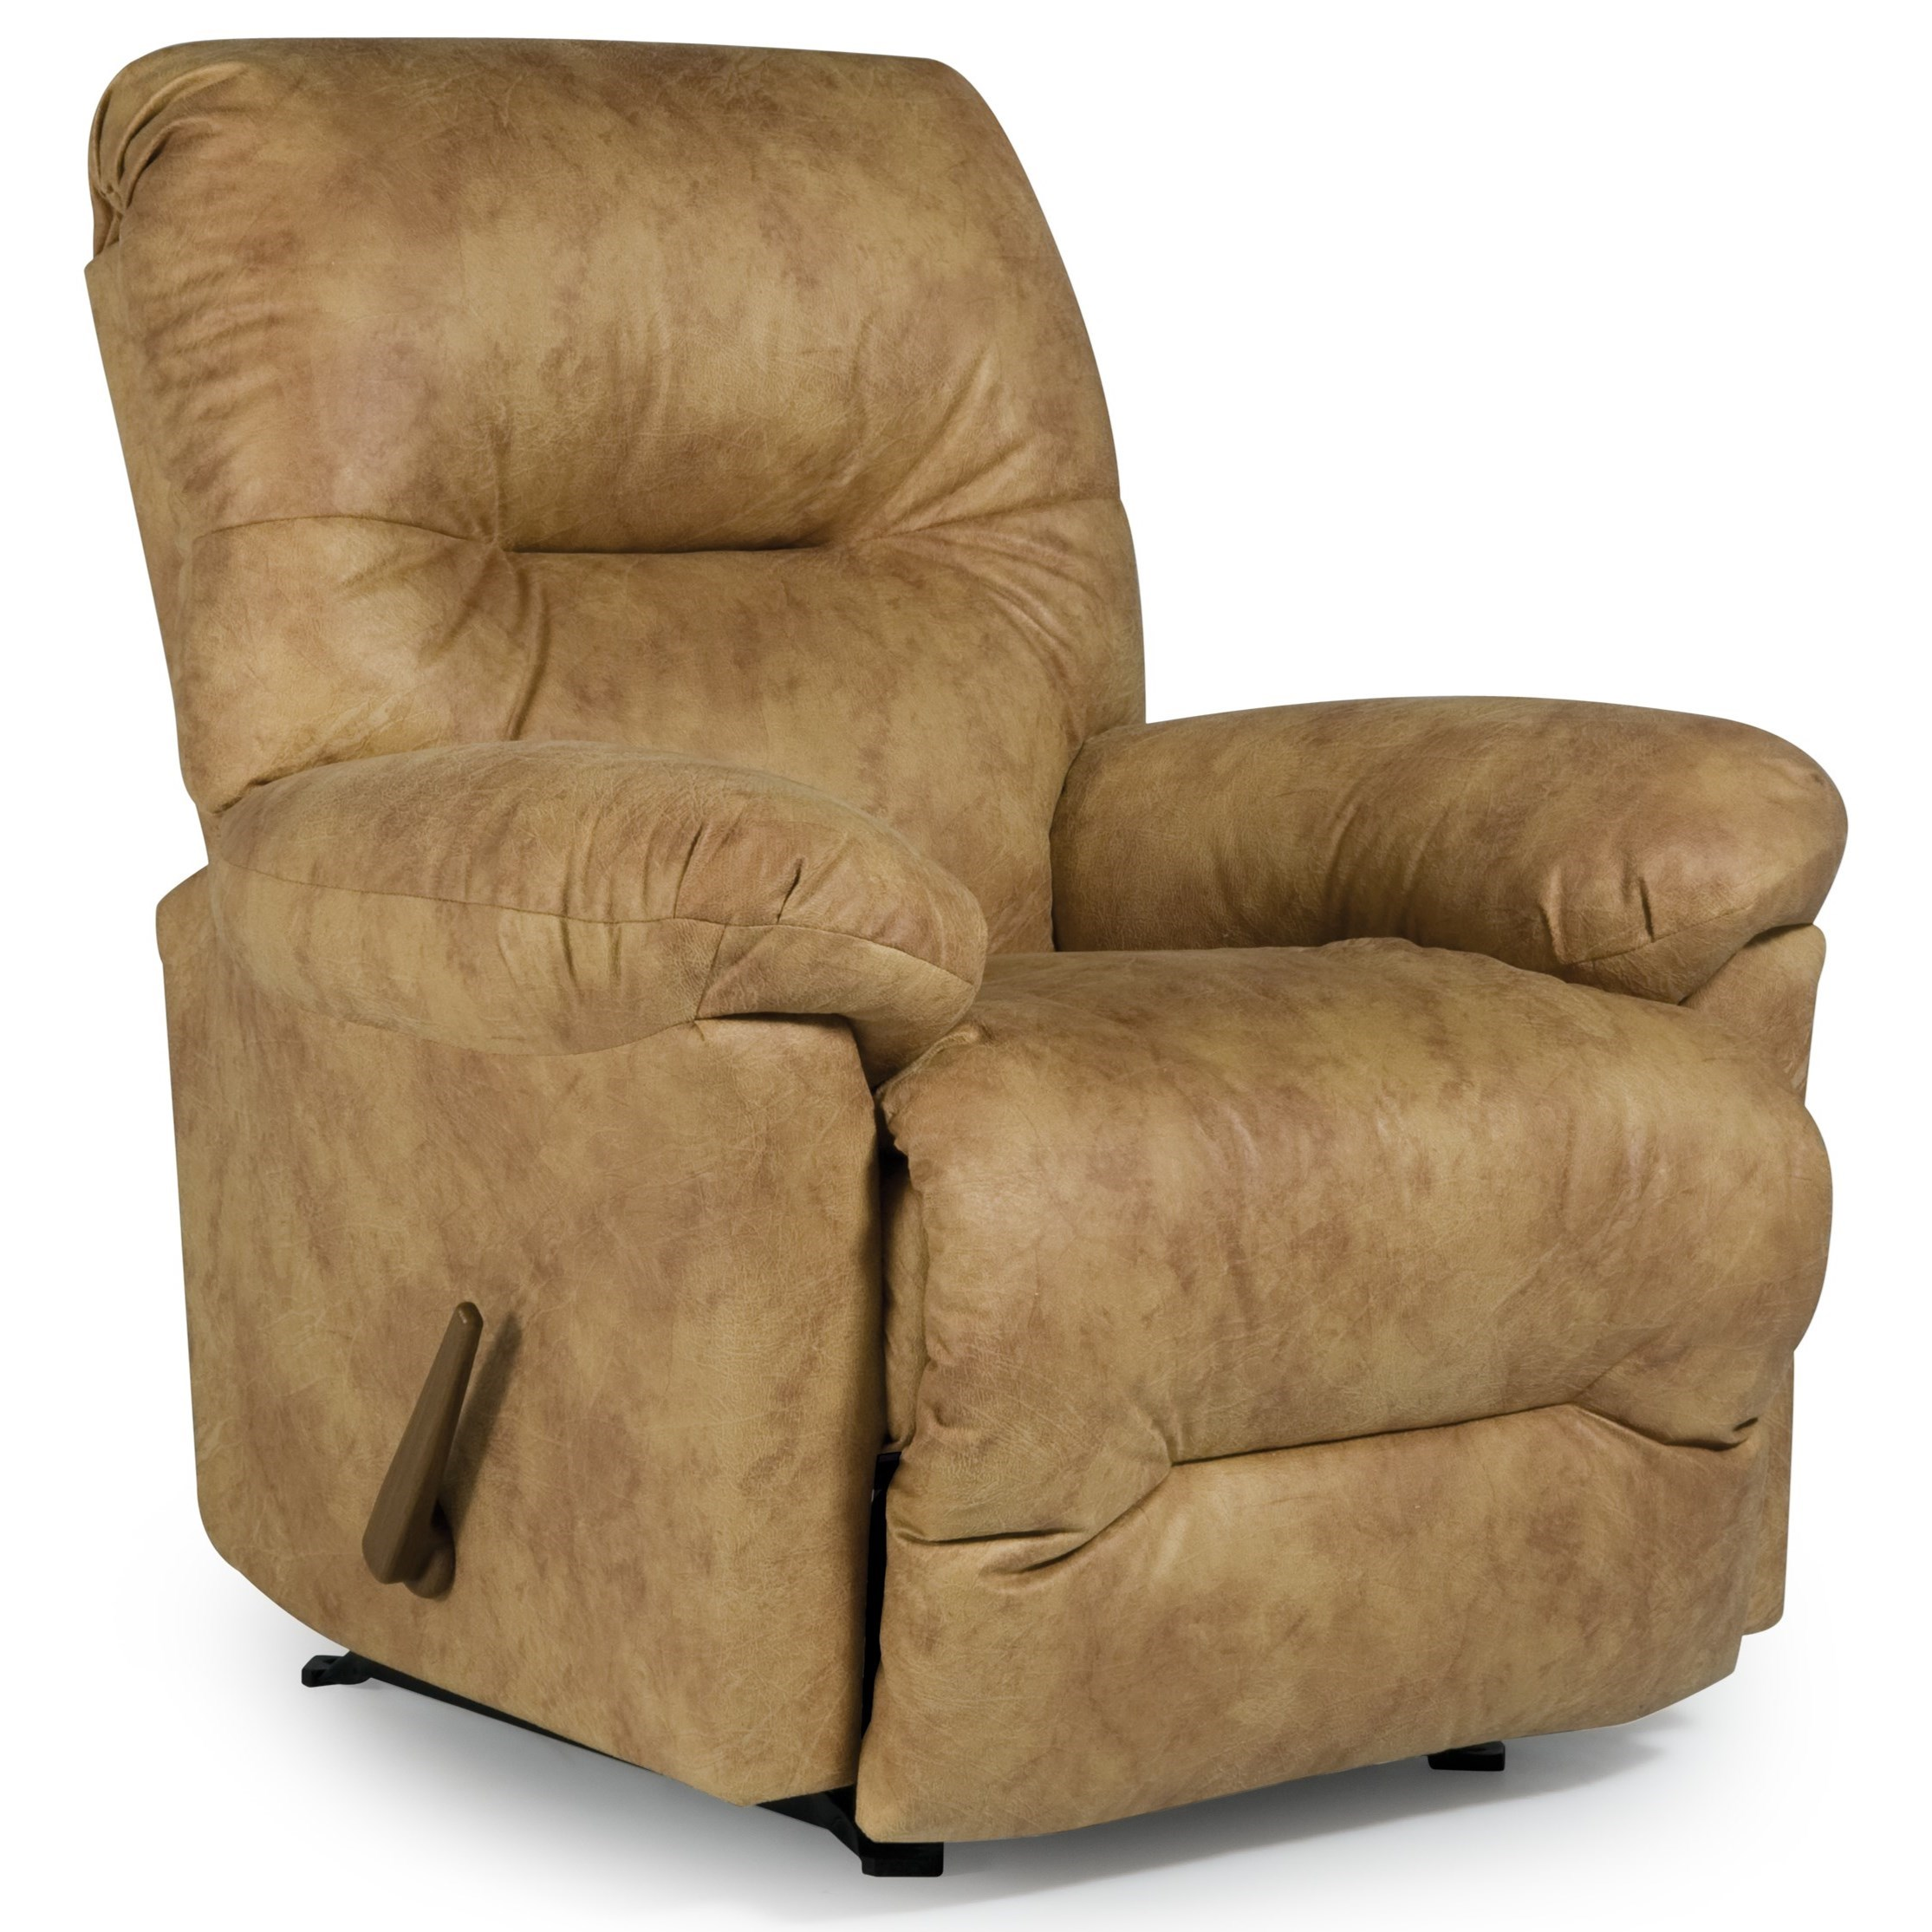 best chairs swivel glider recliner chair cover king york on home furnishings recliners medium 6n25 rodney